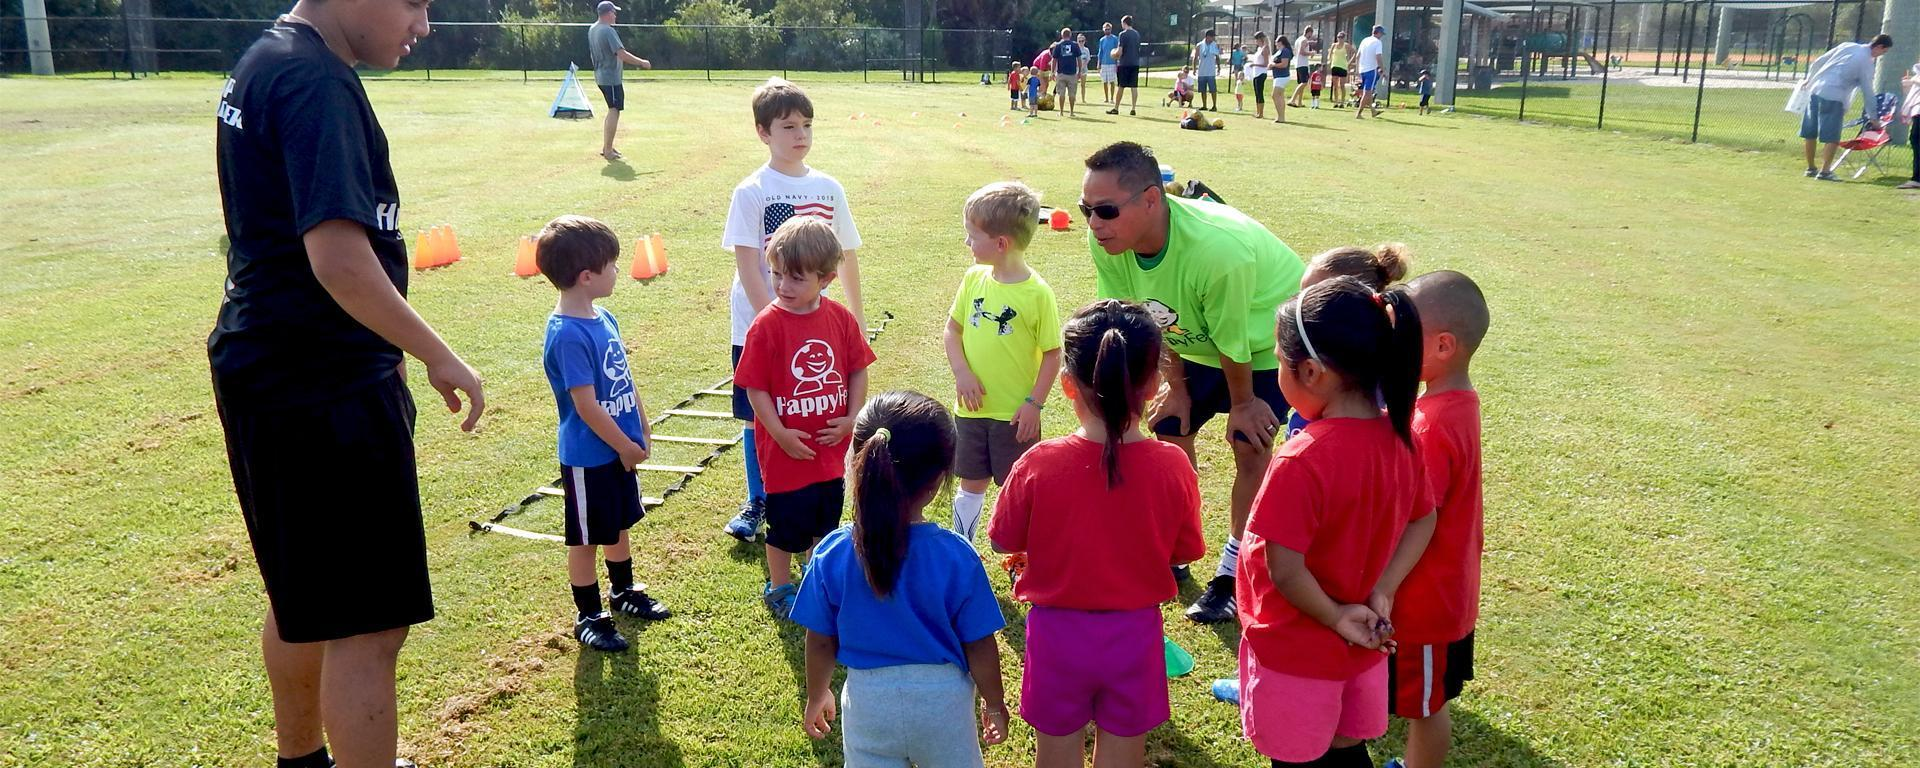 Youth soccer team meeting with their coach.